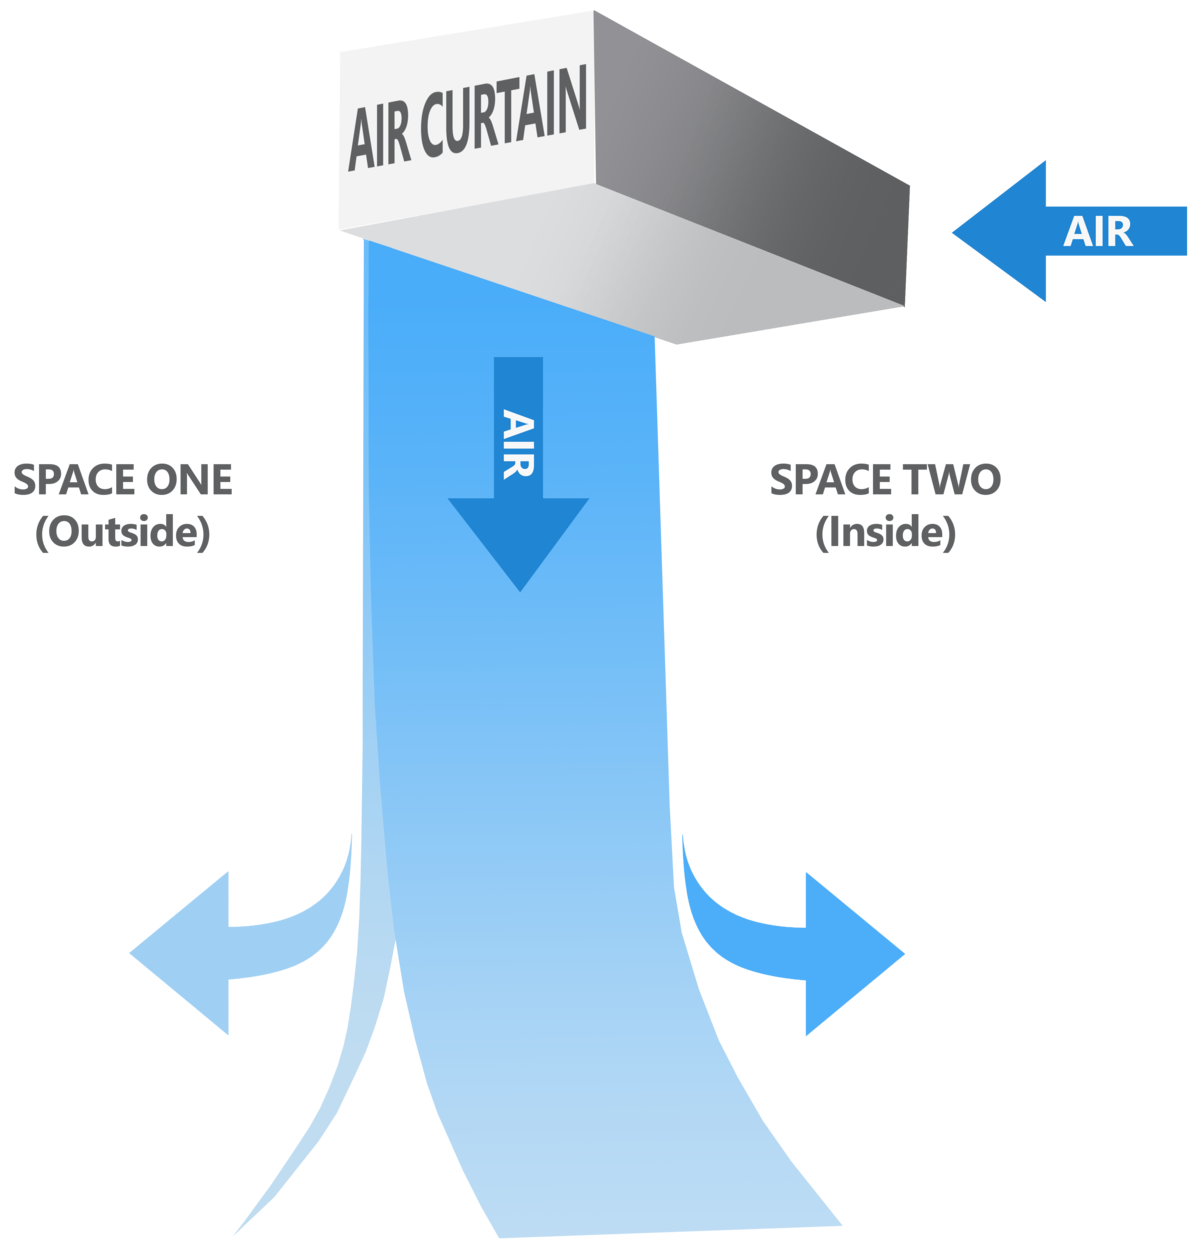 An air curtain blows air in a precise pattern to create a seal between two spaces in a facility and to maximize air quality.